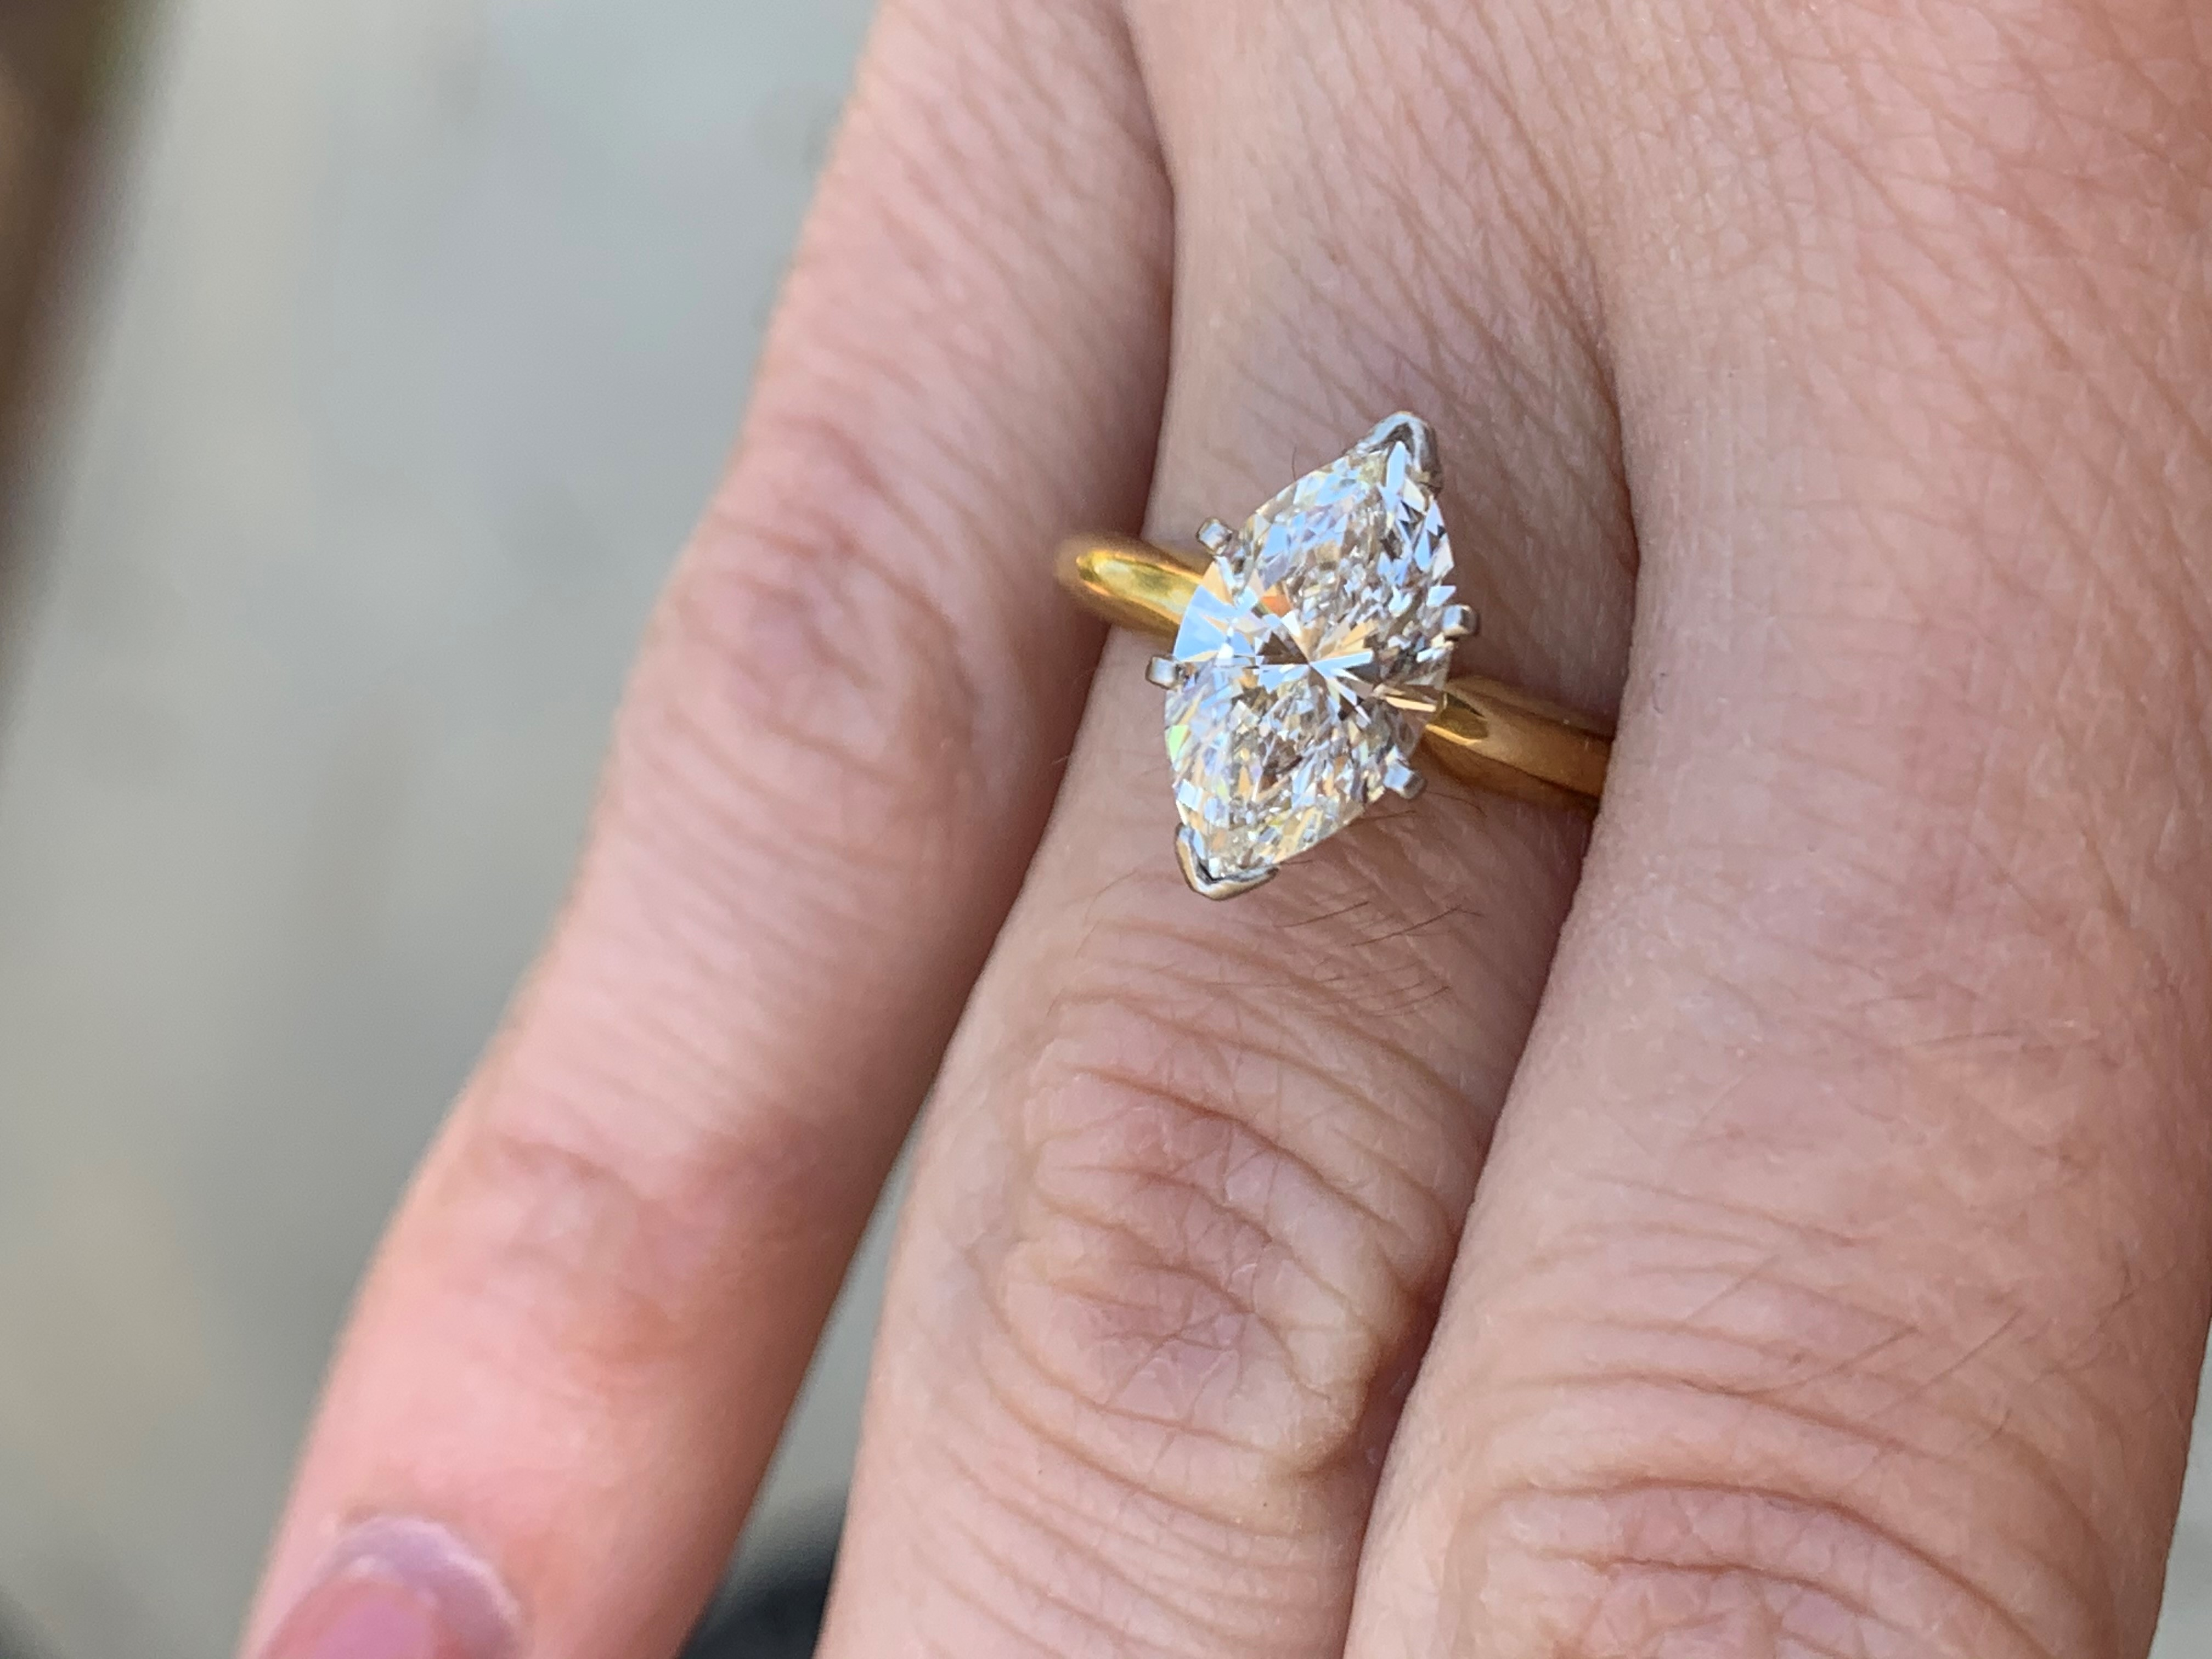 Rare 19 265 Leo Marquise Diamond Solitaire Engagement Ring 1 54 Carats Vs2 G With Platinum Head Size 5 I Do Now I Don T